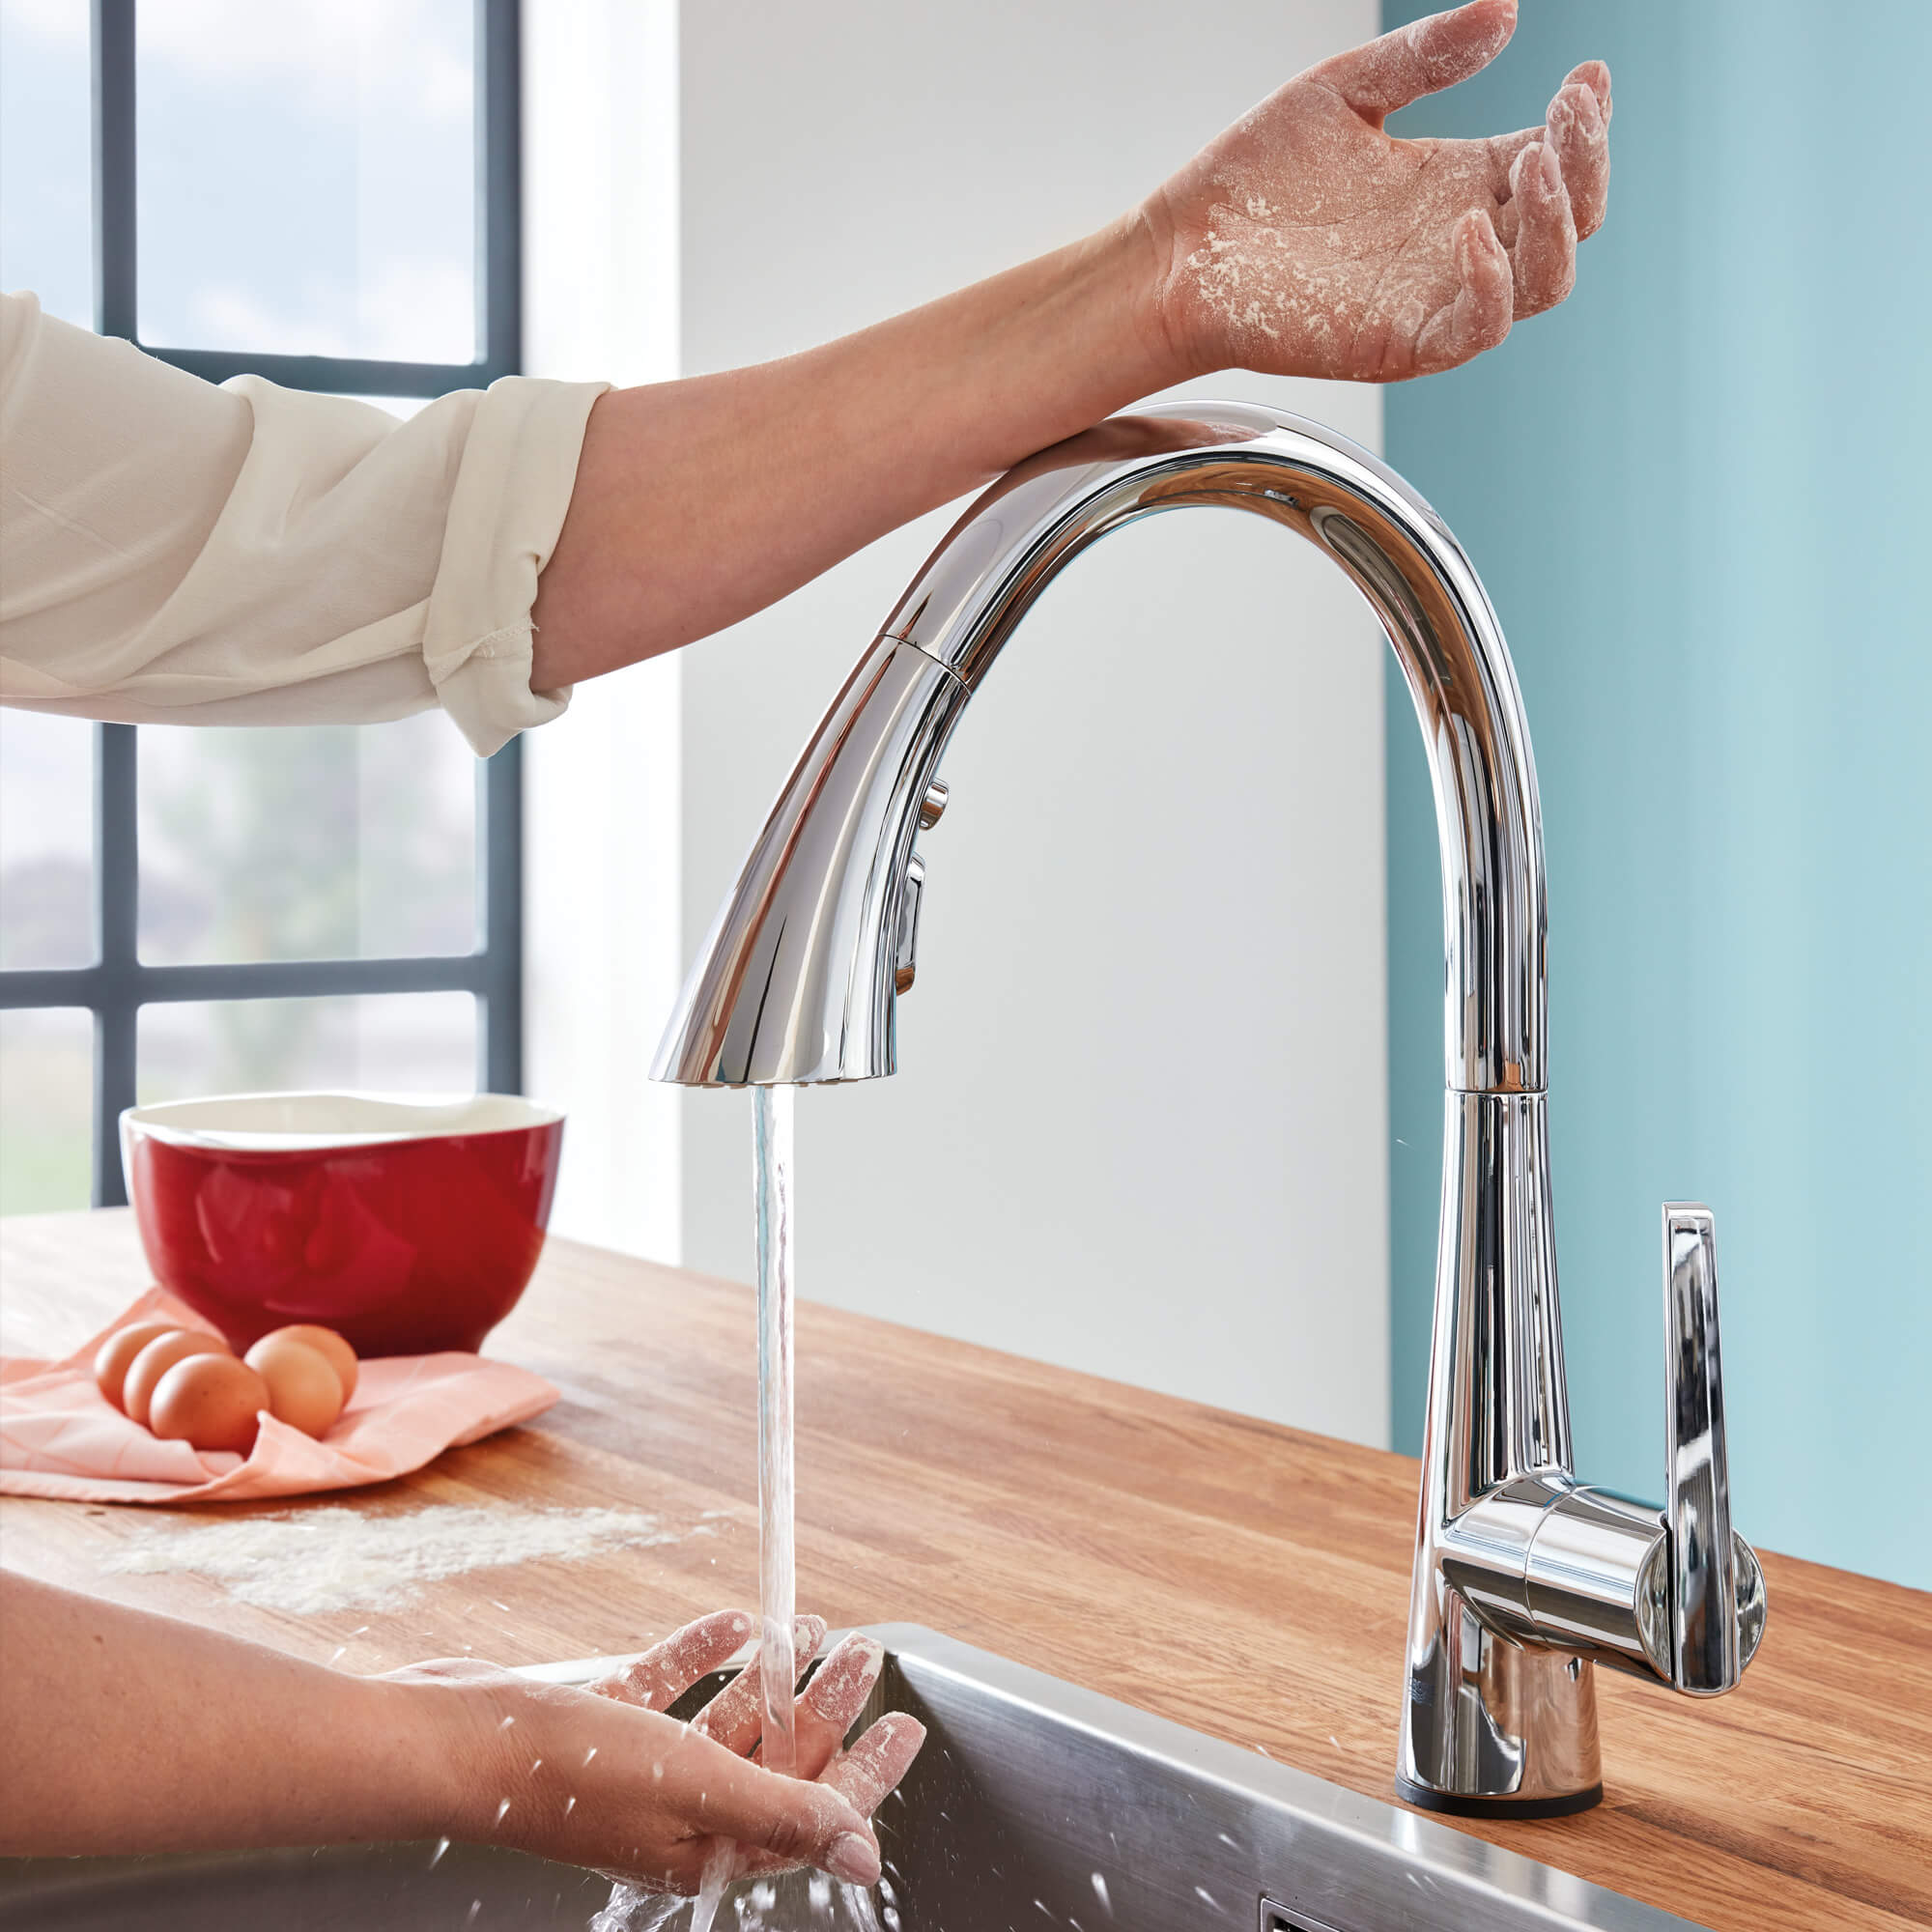 Touch Faucet from GROHE